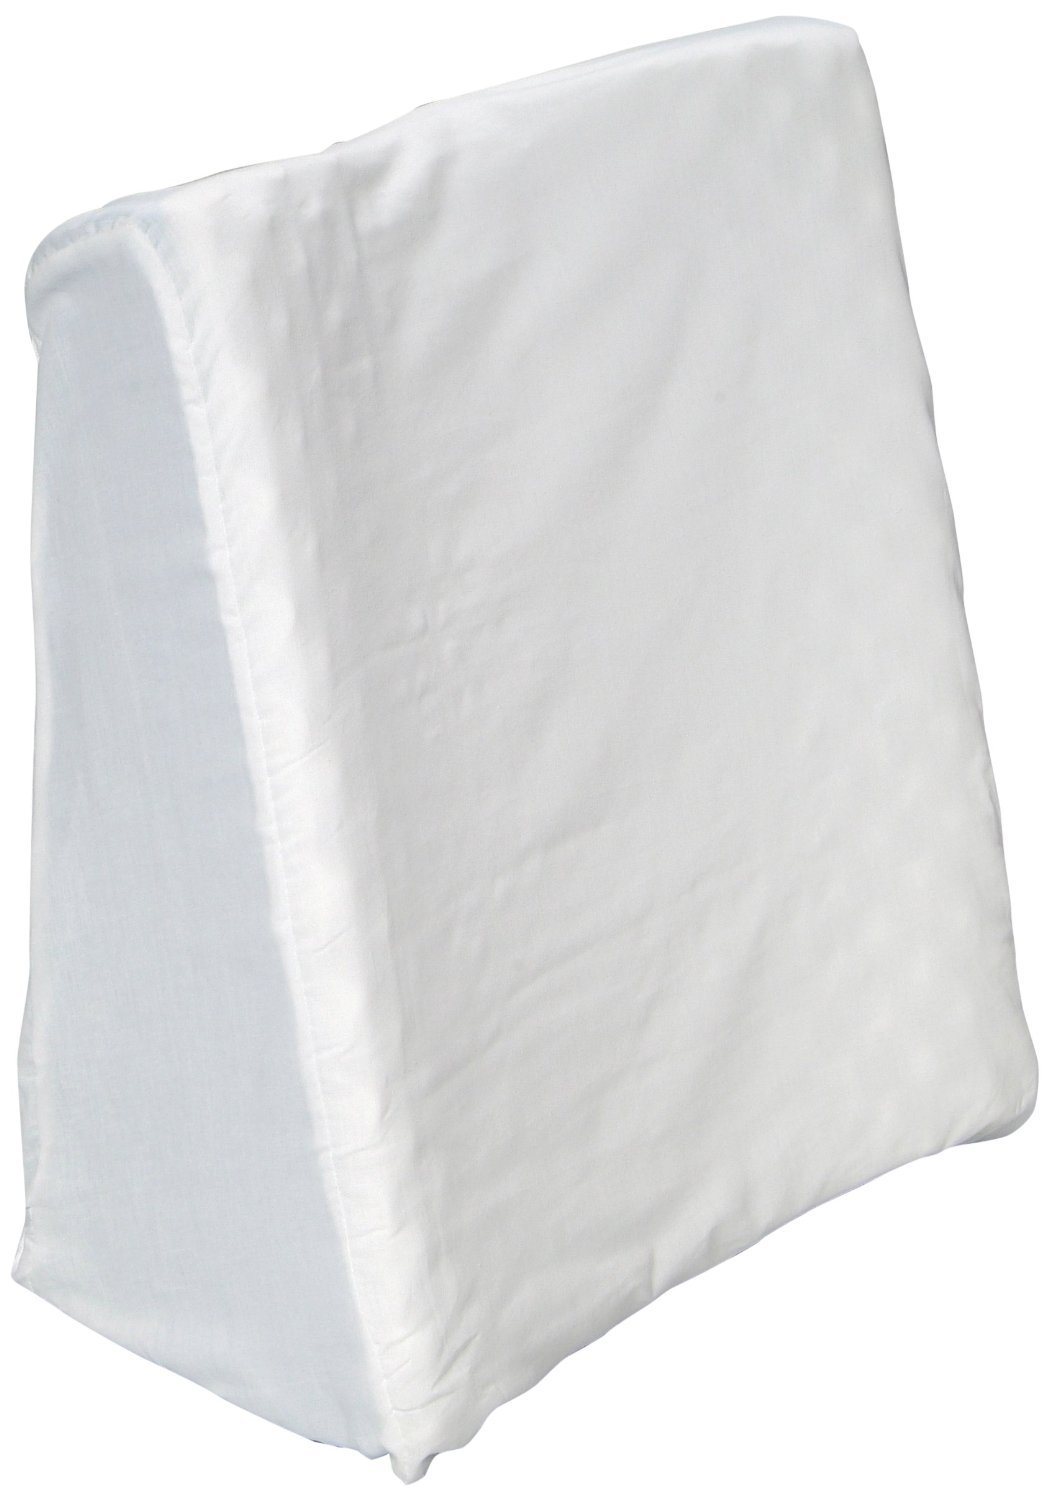 Hermell Products Cover for Dual Position Wedge Cushion MJ1795 or MJ1797, White